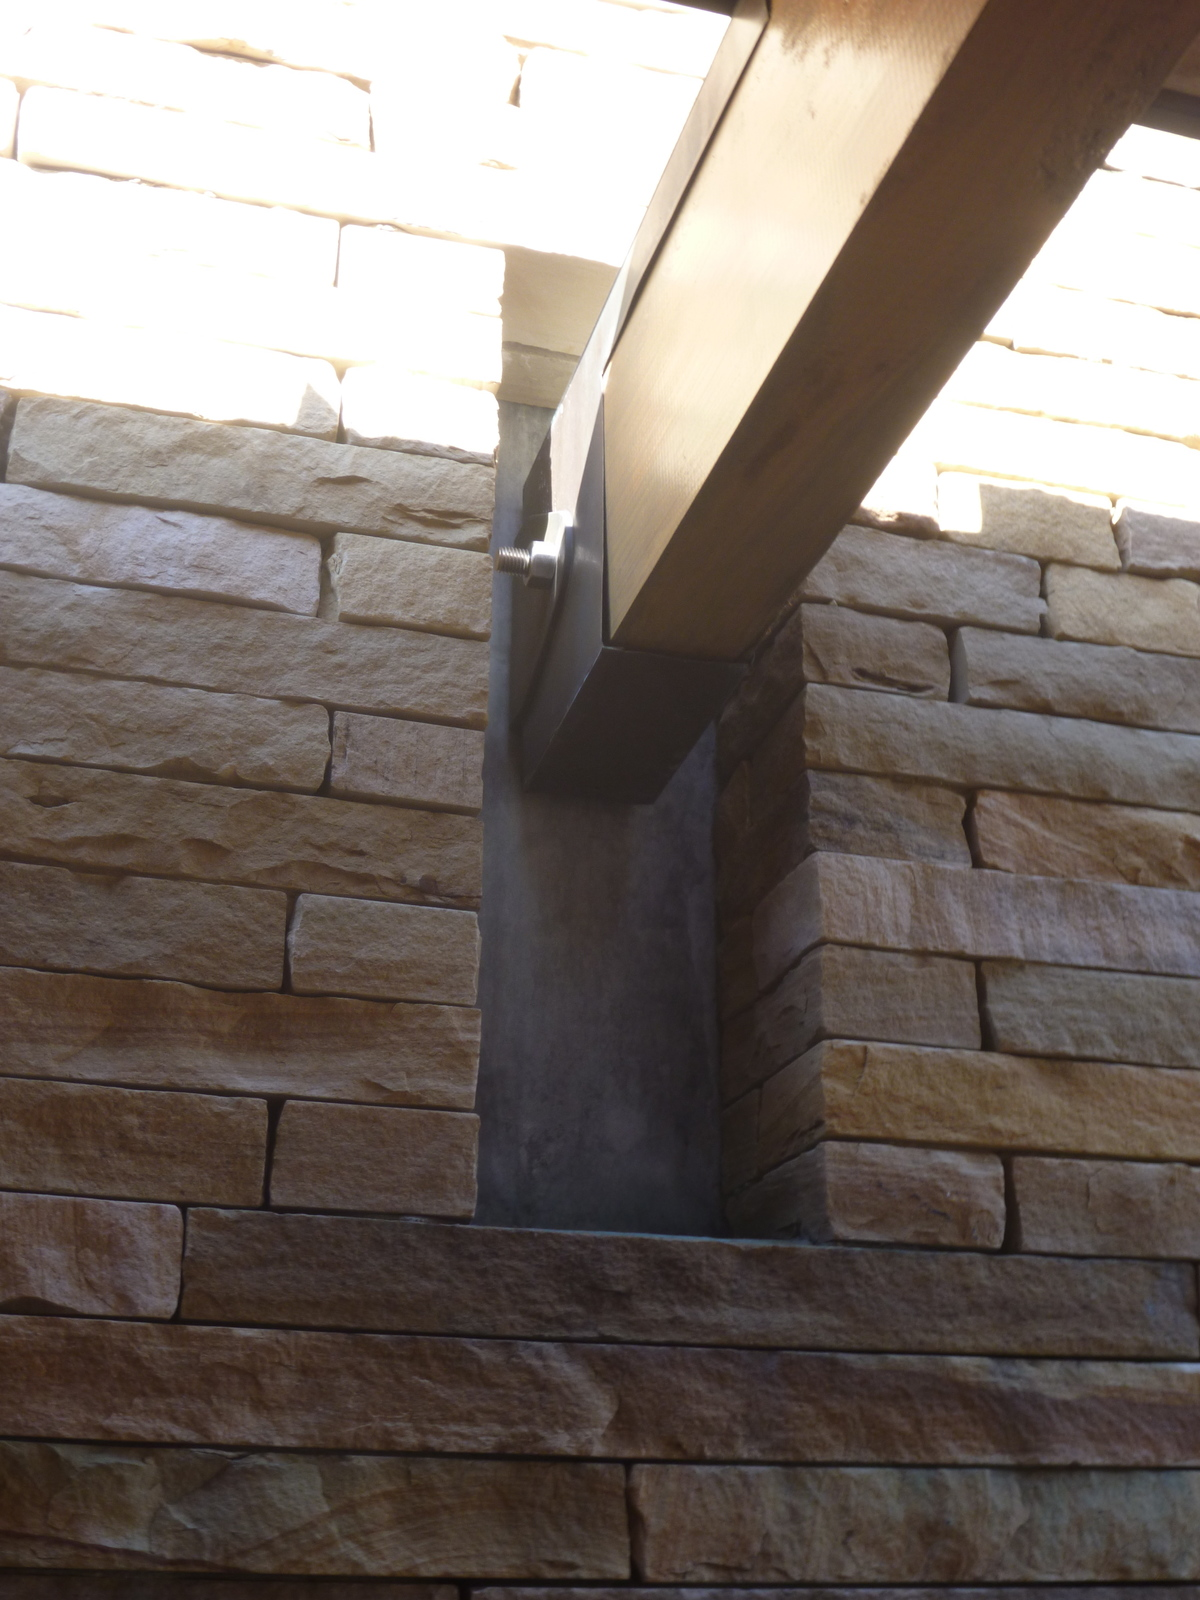 How the wooden beams meet the stone wall